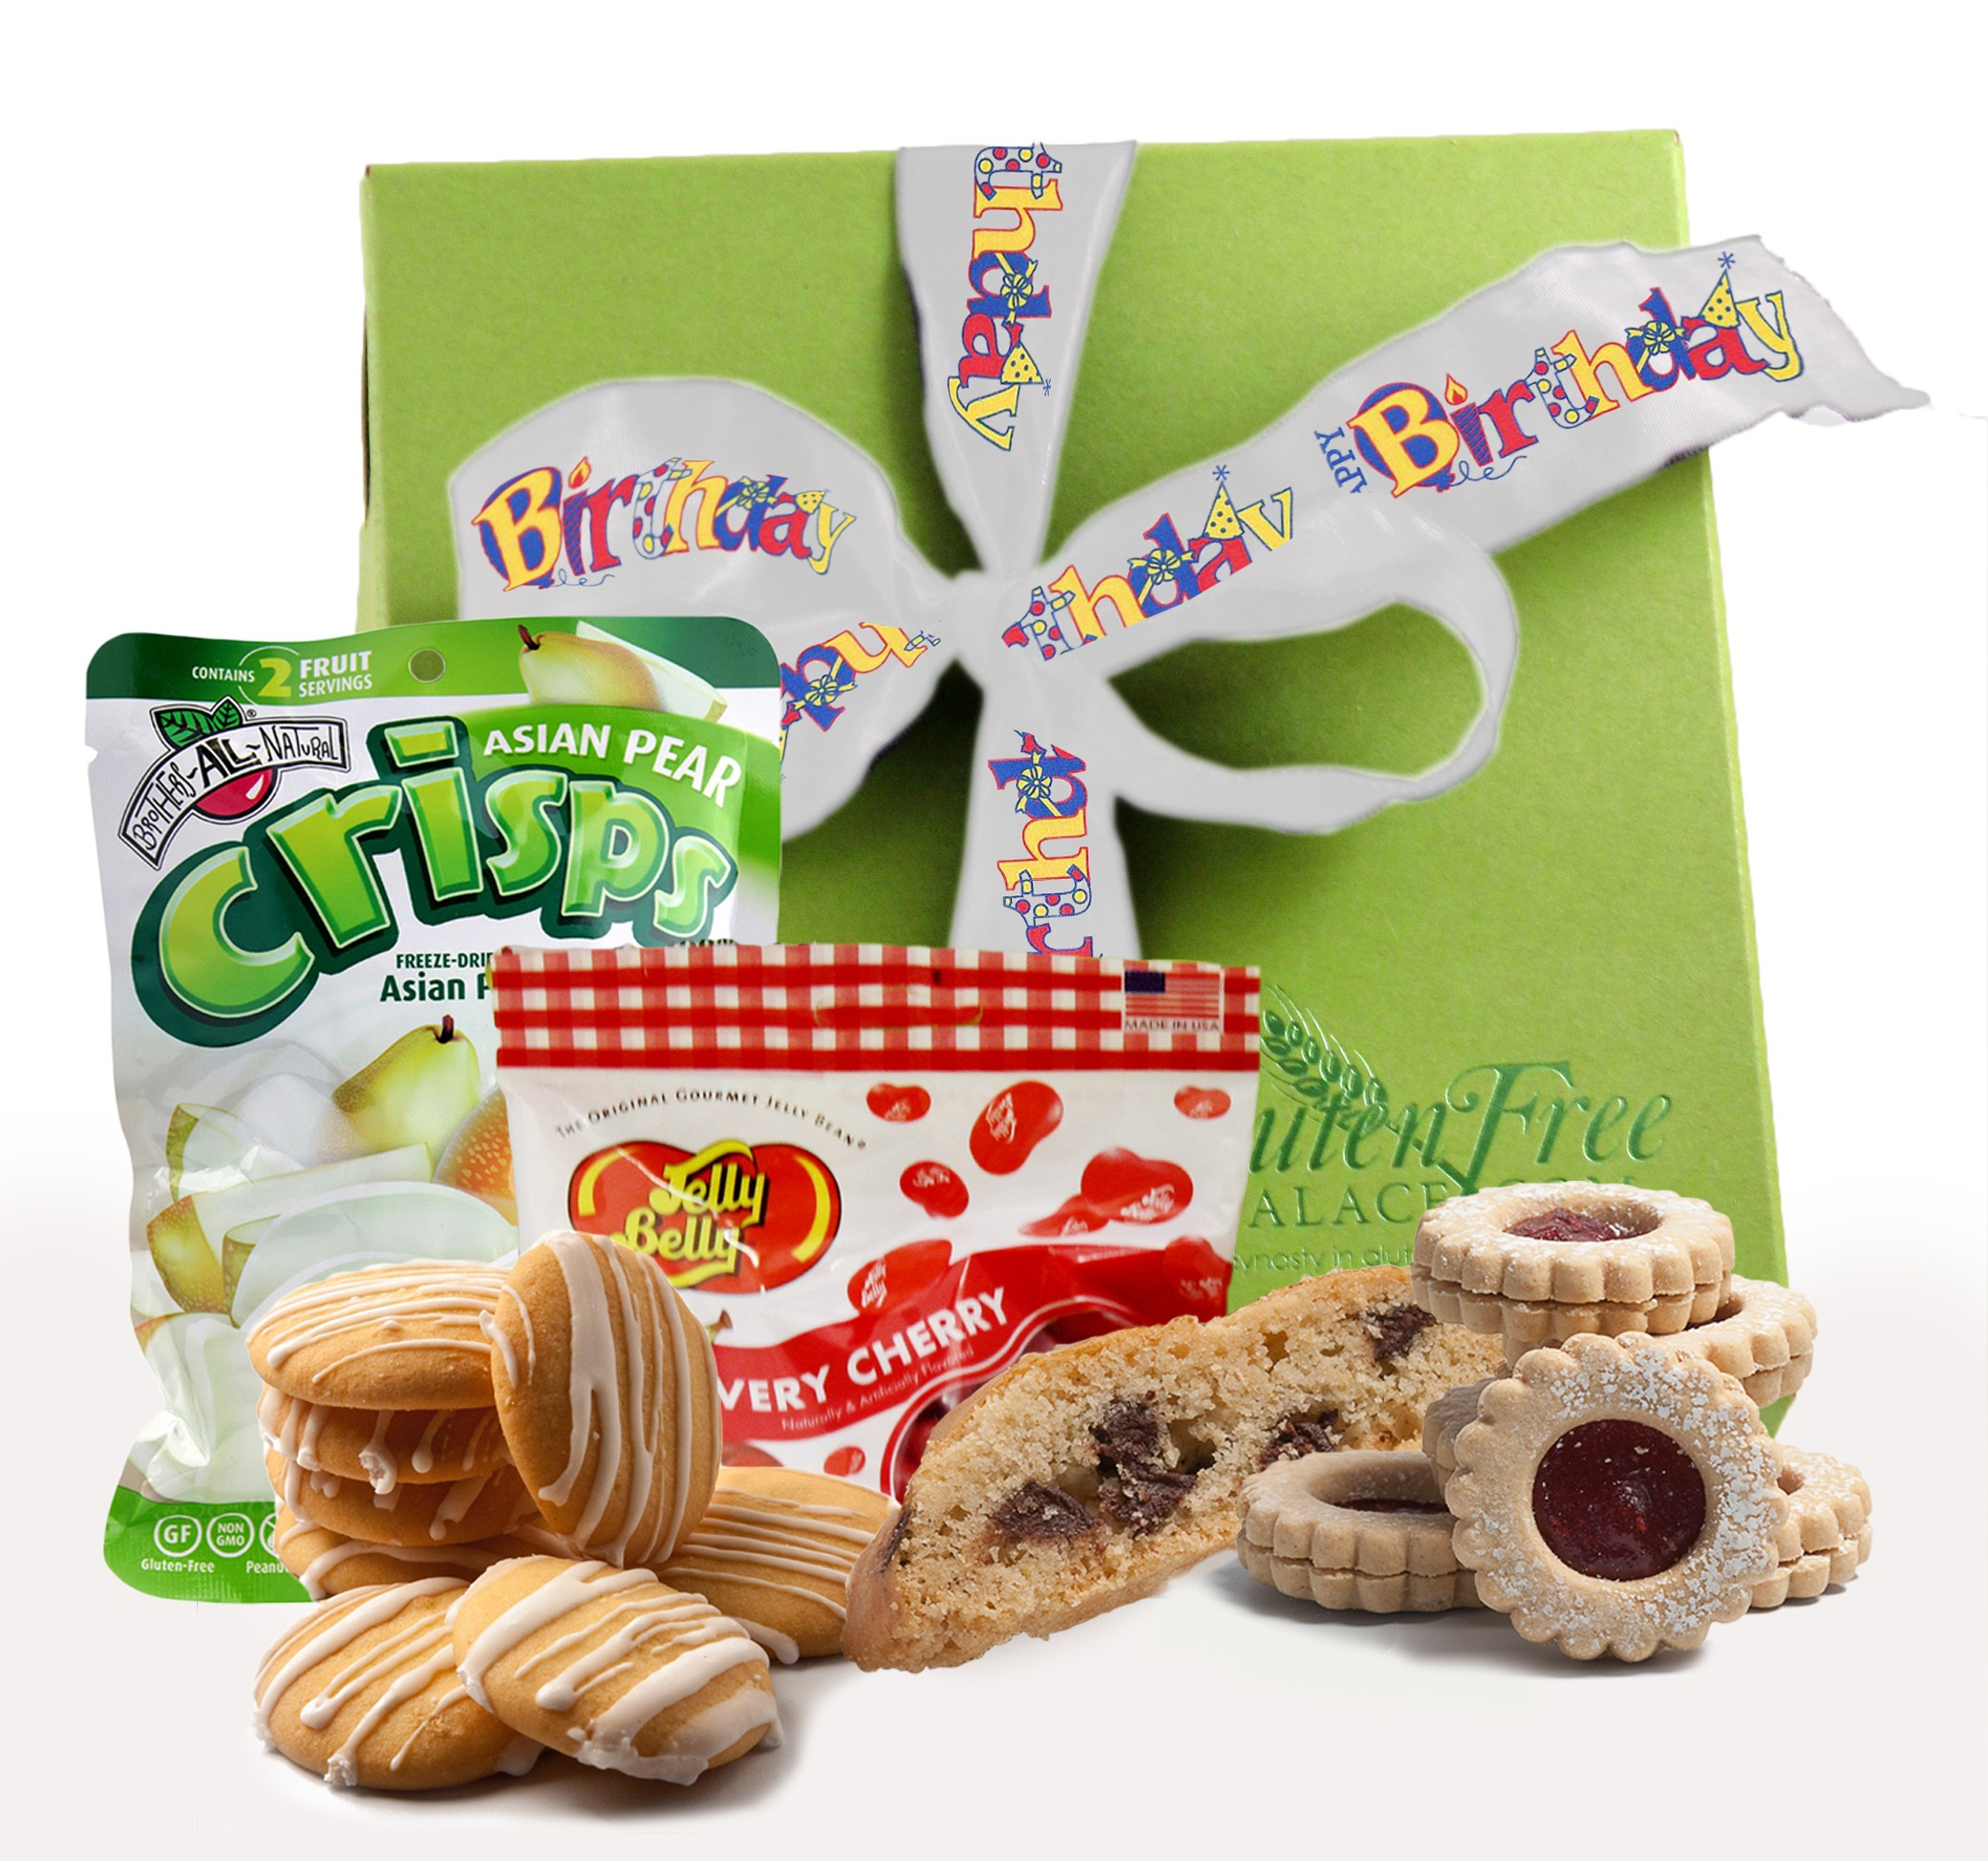 Its your special day happy birthday gift basket glutenfreepalace happy birthday gluten free gift box negle Choice Image